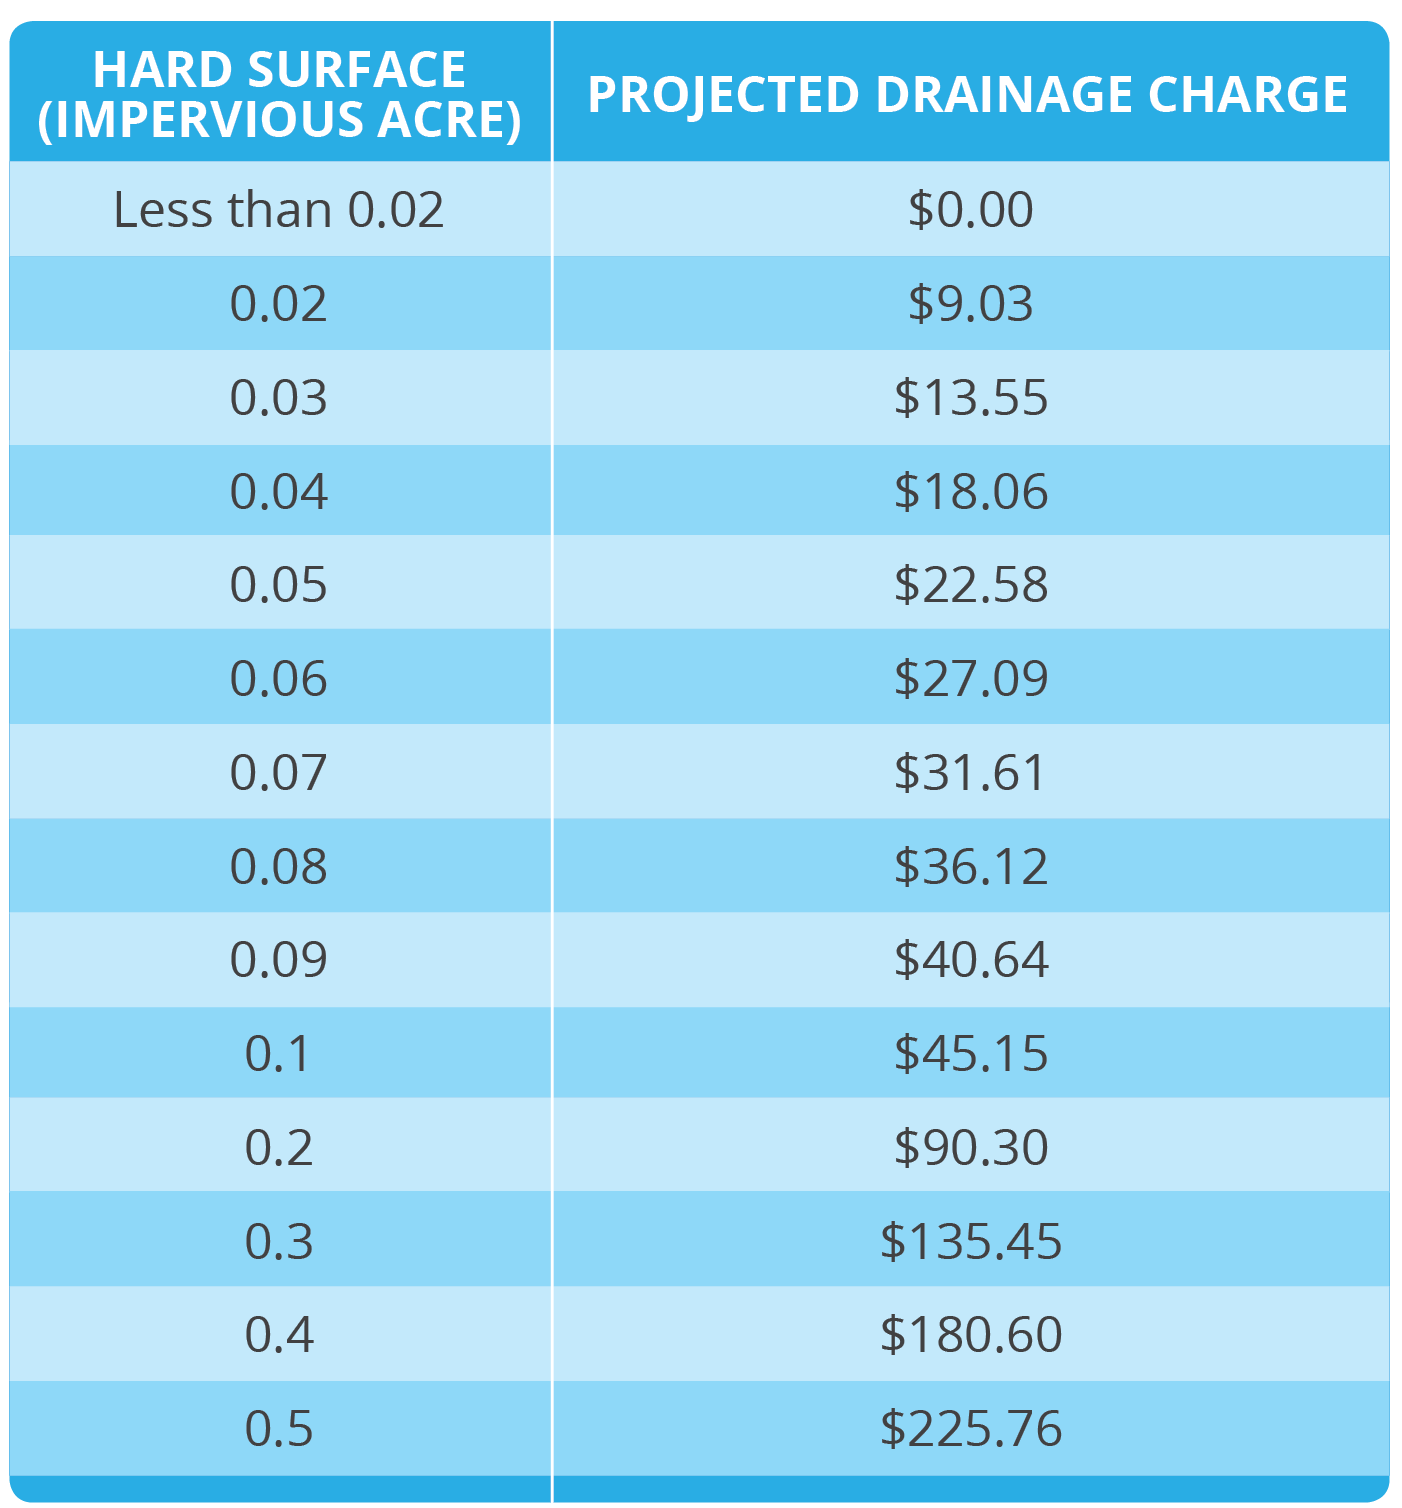 Drainage Charge Projected Annual Rates per Impervious Acreage